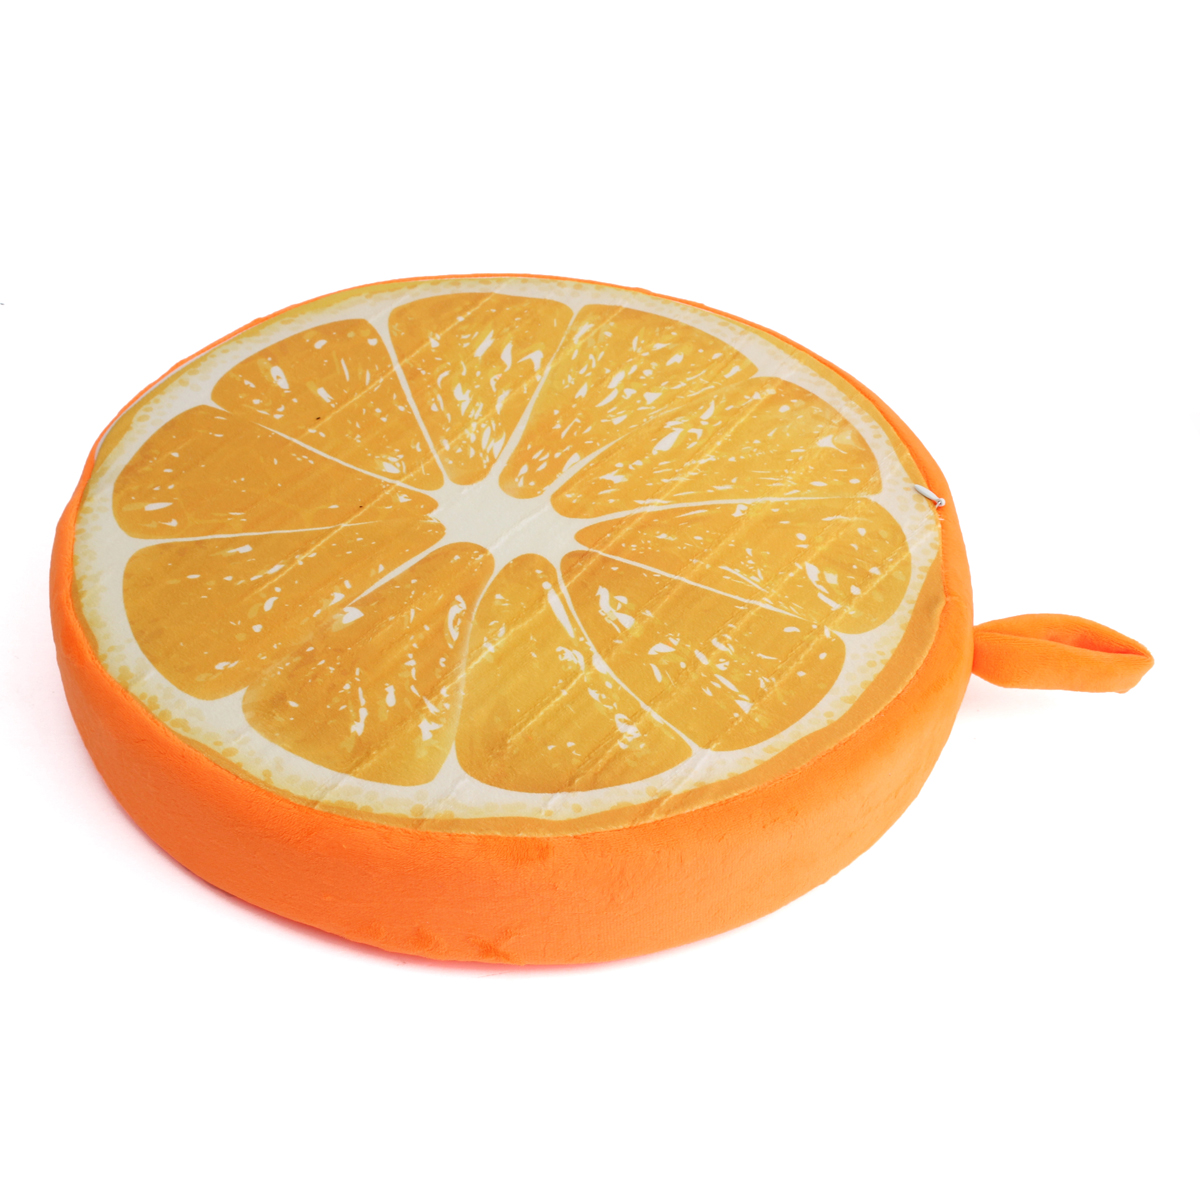 Soft Home Office Round Fruit Pillow Plush Dining Cushion  : E7369323CDCD368323CDD2669DCD73D29963099DCBD29B939CC6D2ED836626C73616CD93769C539393A073 from ebay.co.uk size 1200 x 1200 jpeg 567kB